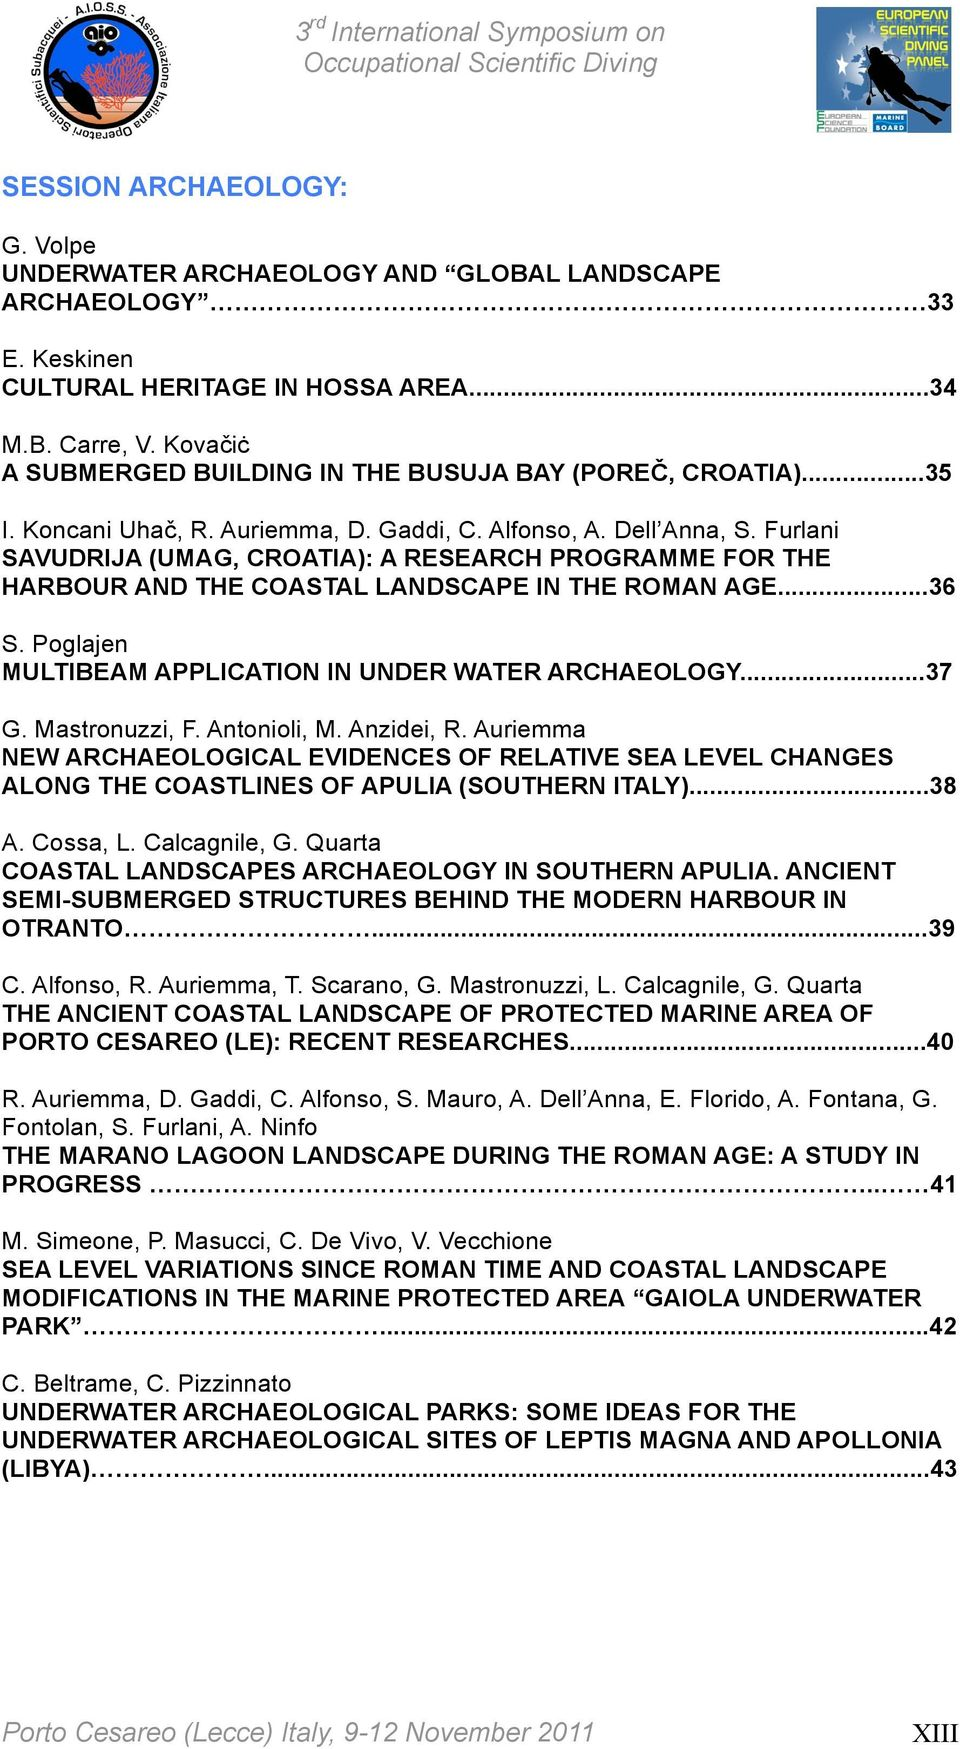 Furlani SAVUDRIJA (UMAG, CROATIA): A RESEARCH PROGRAMME FOR THE HARBOUR AND THE COASTAL LANDSCAPE IN THE ROMAN AGE...36 S. Poglajen MULTIBEAM APPLICATION IN UNDER WATER ARCHAEOLOGY...37 G.